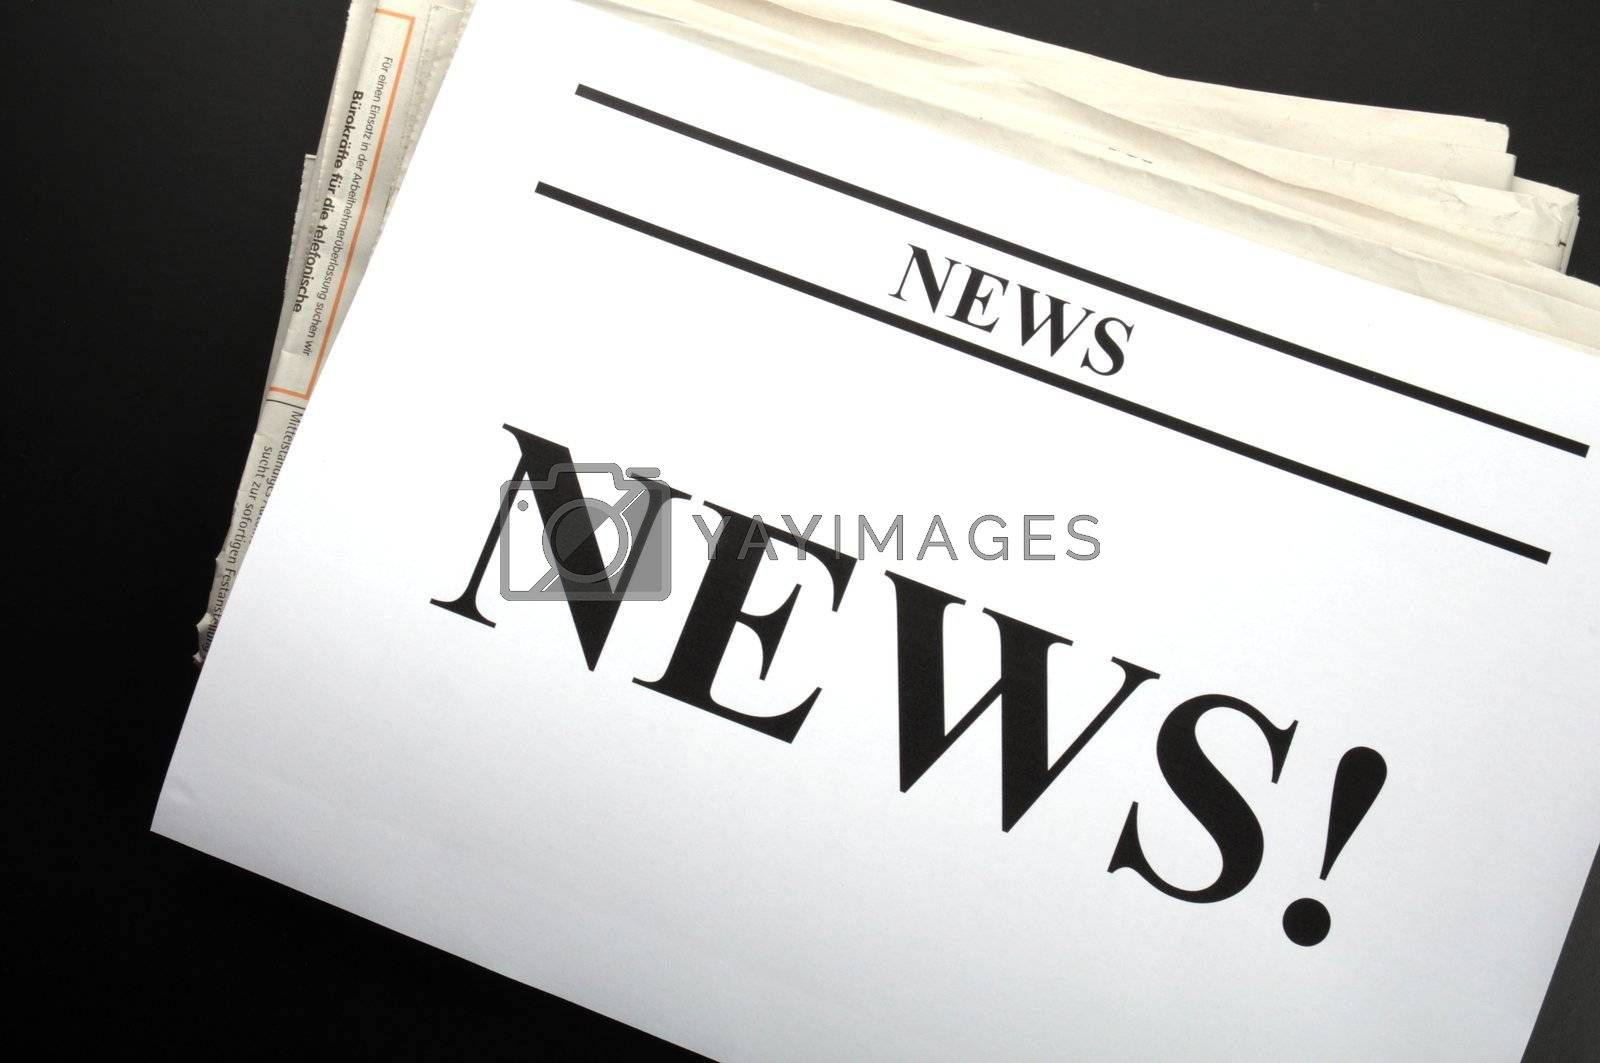 Royalty free image of newspaper by gunnar3000